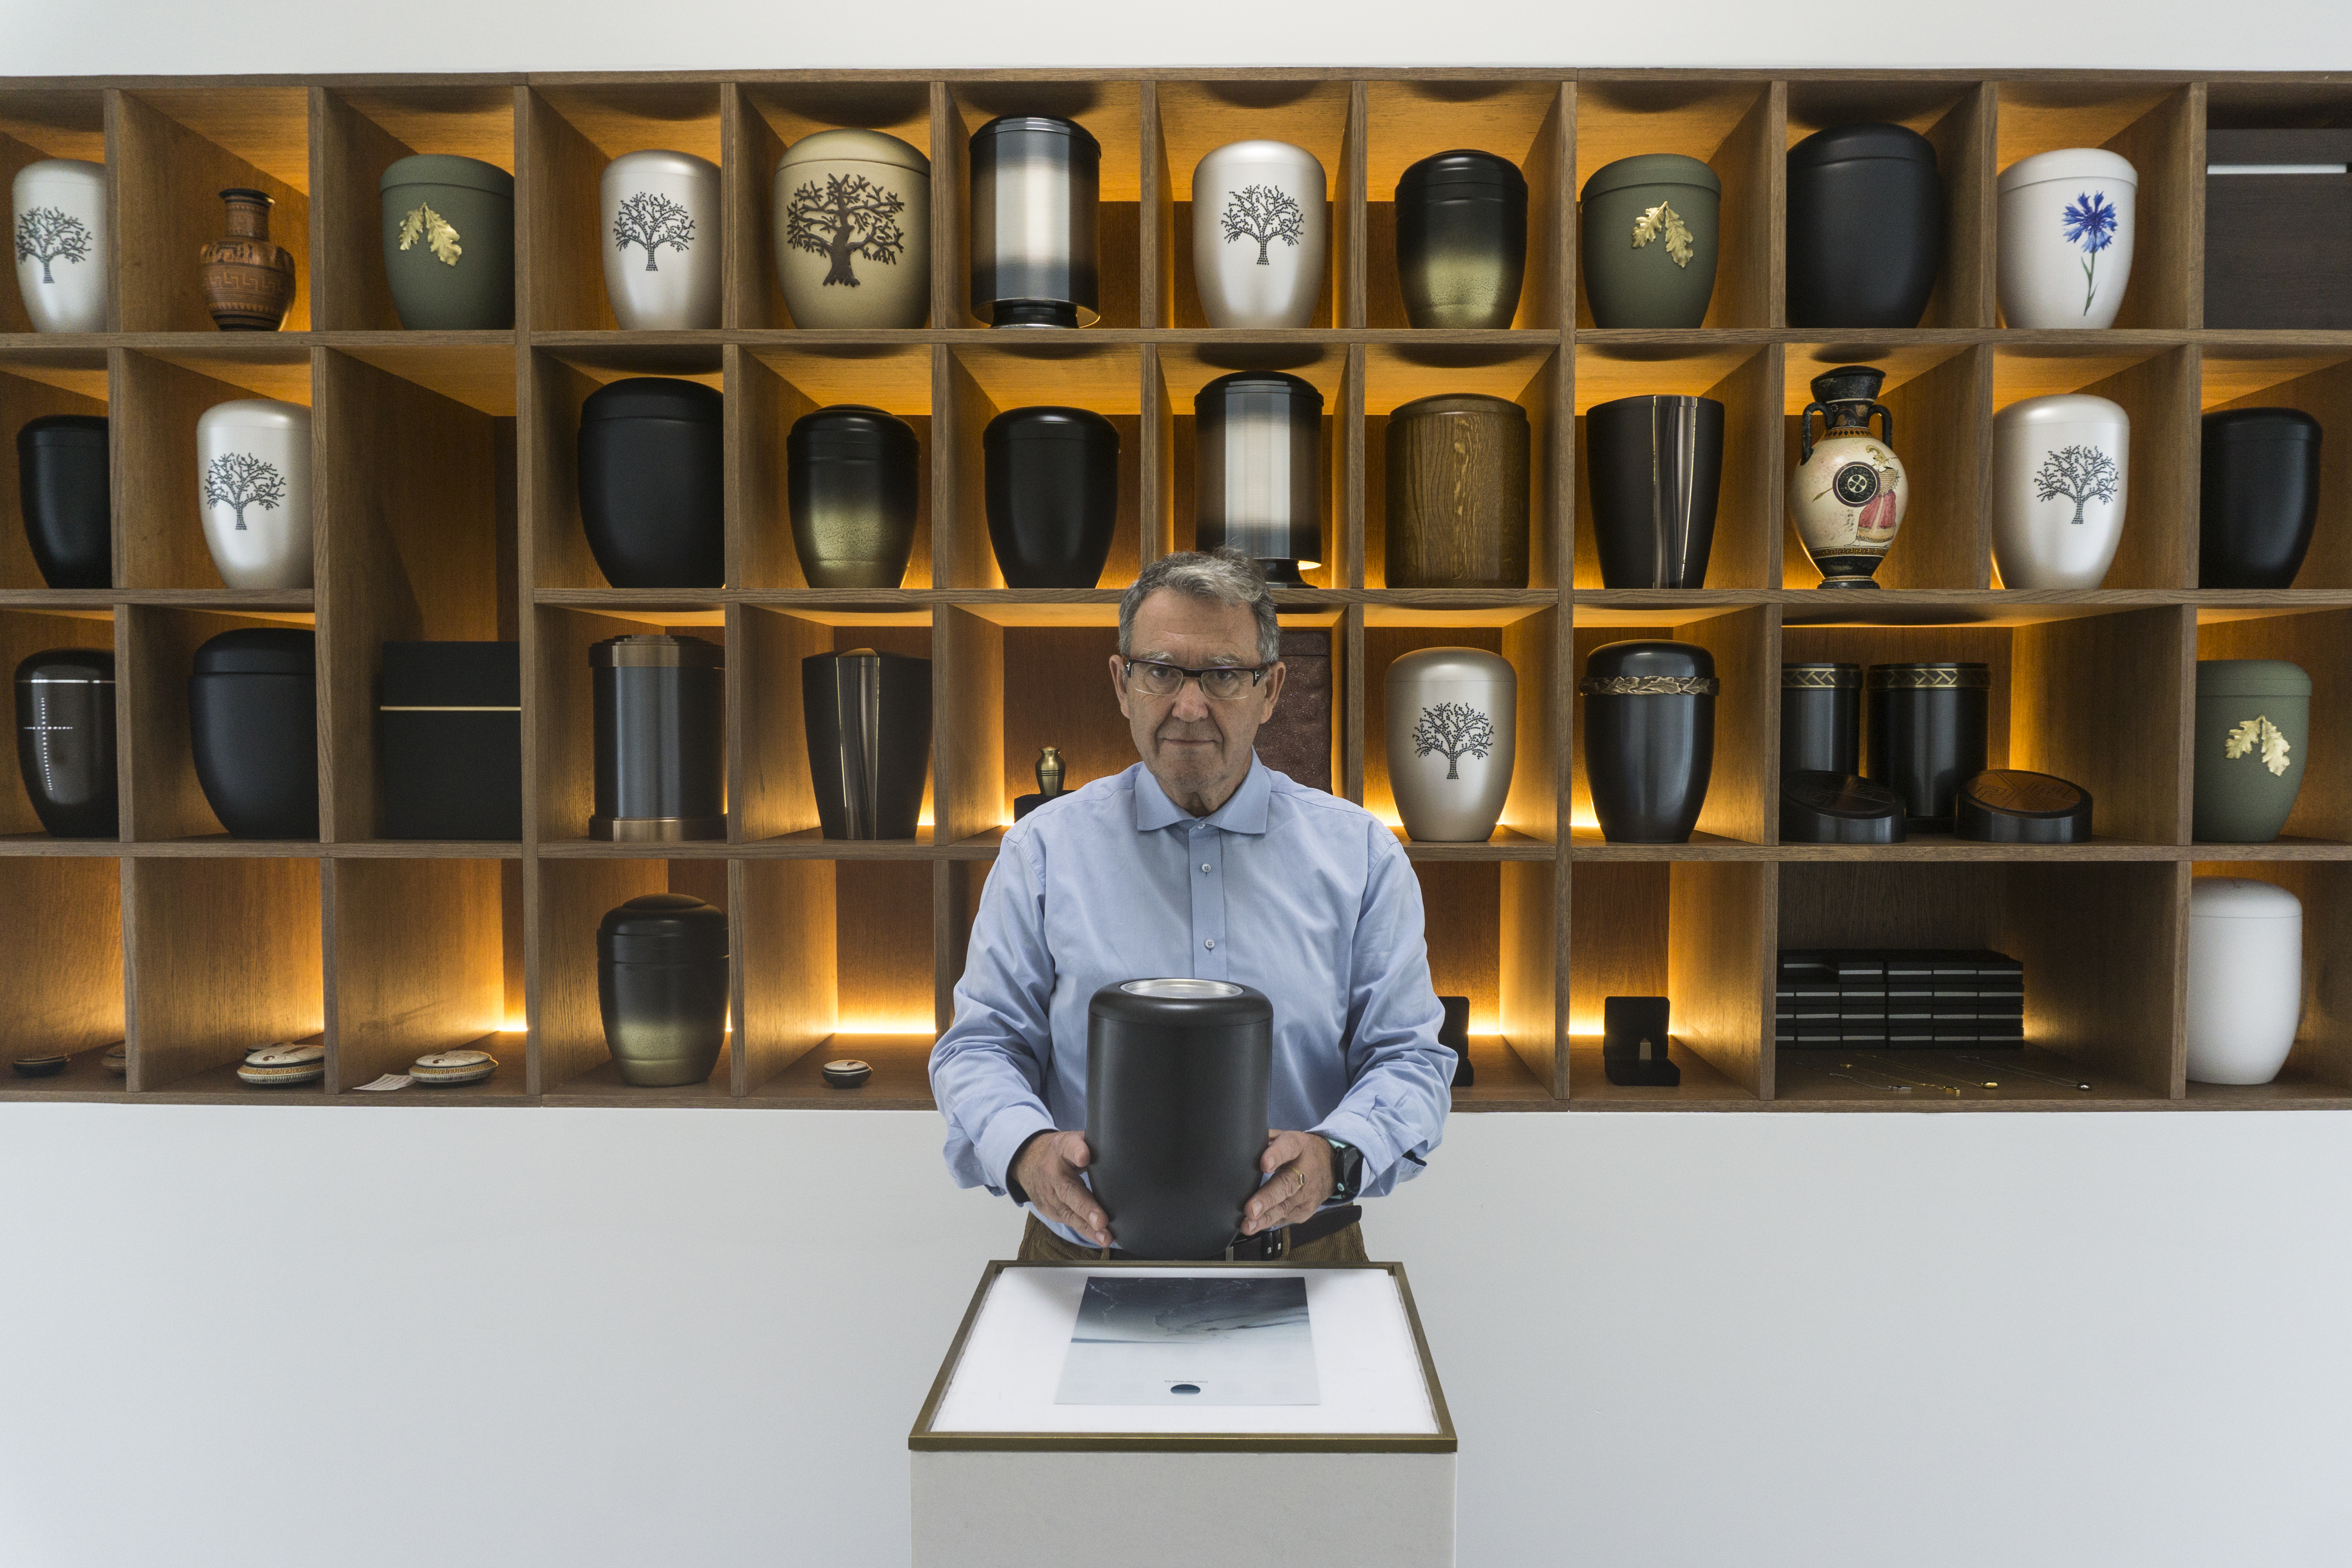 A man stands at a counter holding an urn with many urn designs behind him